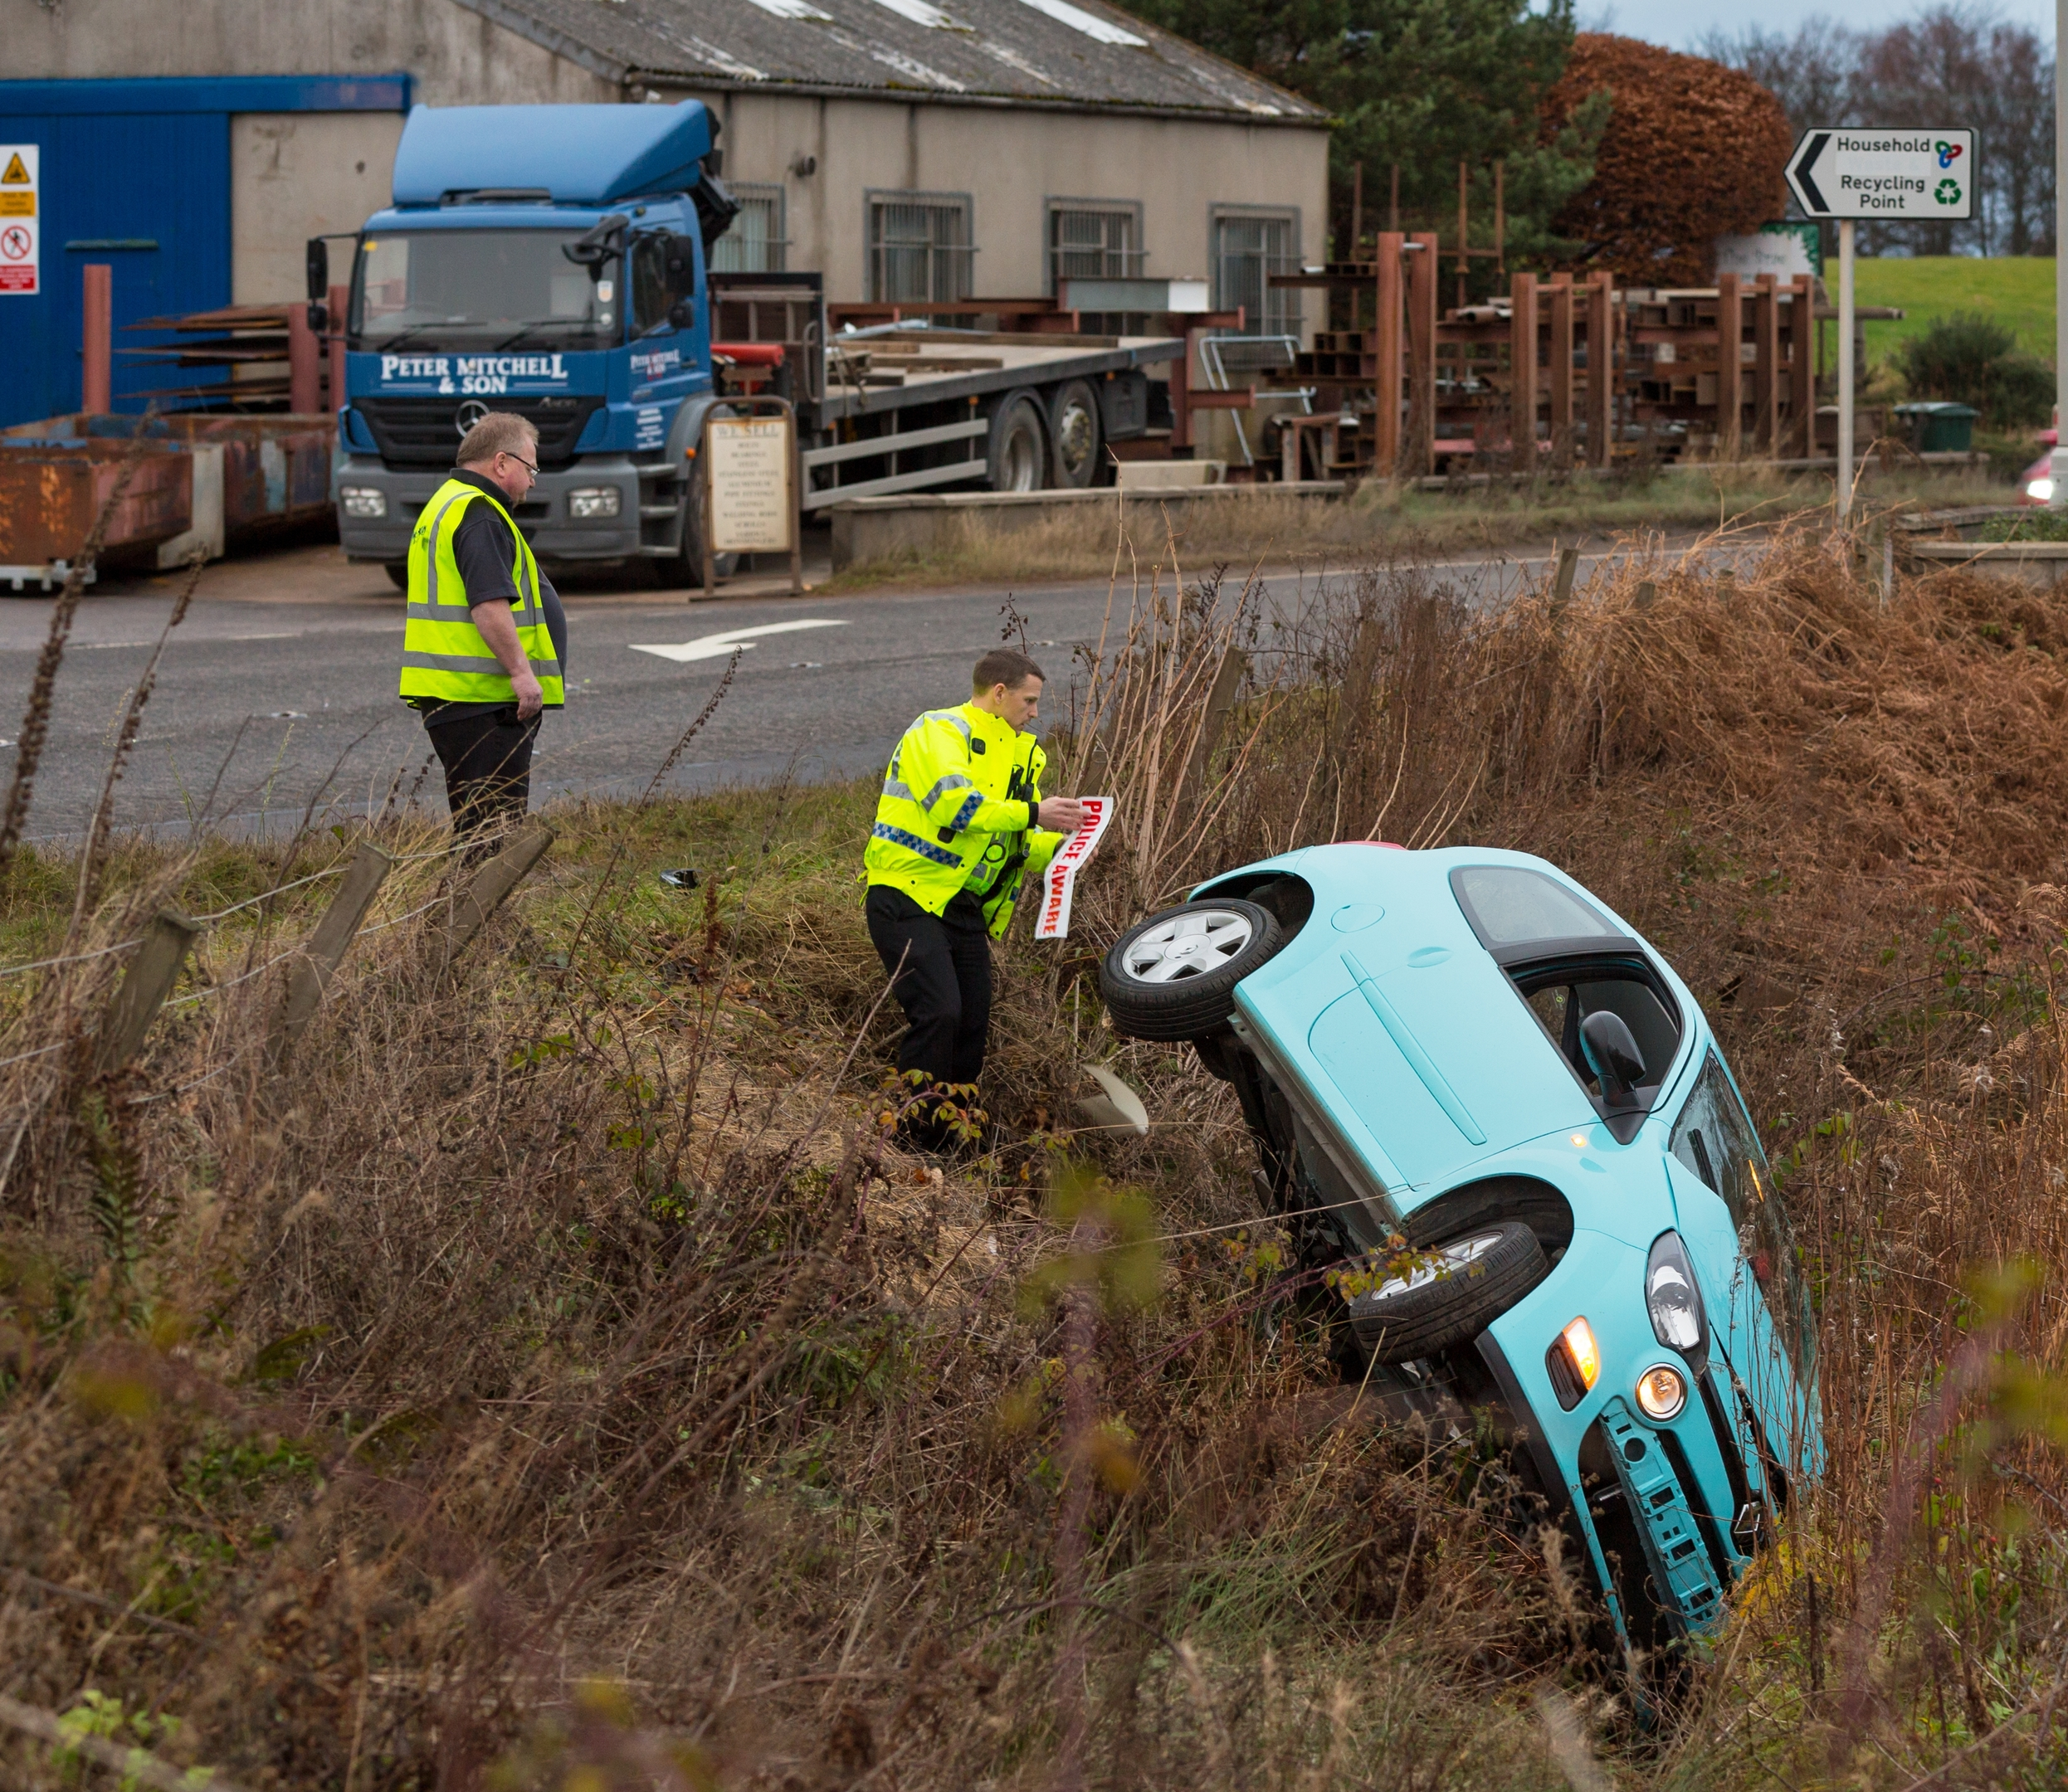 The scene of the crash in Moray